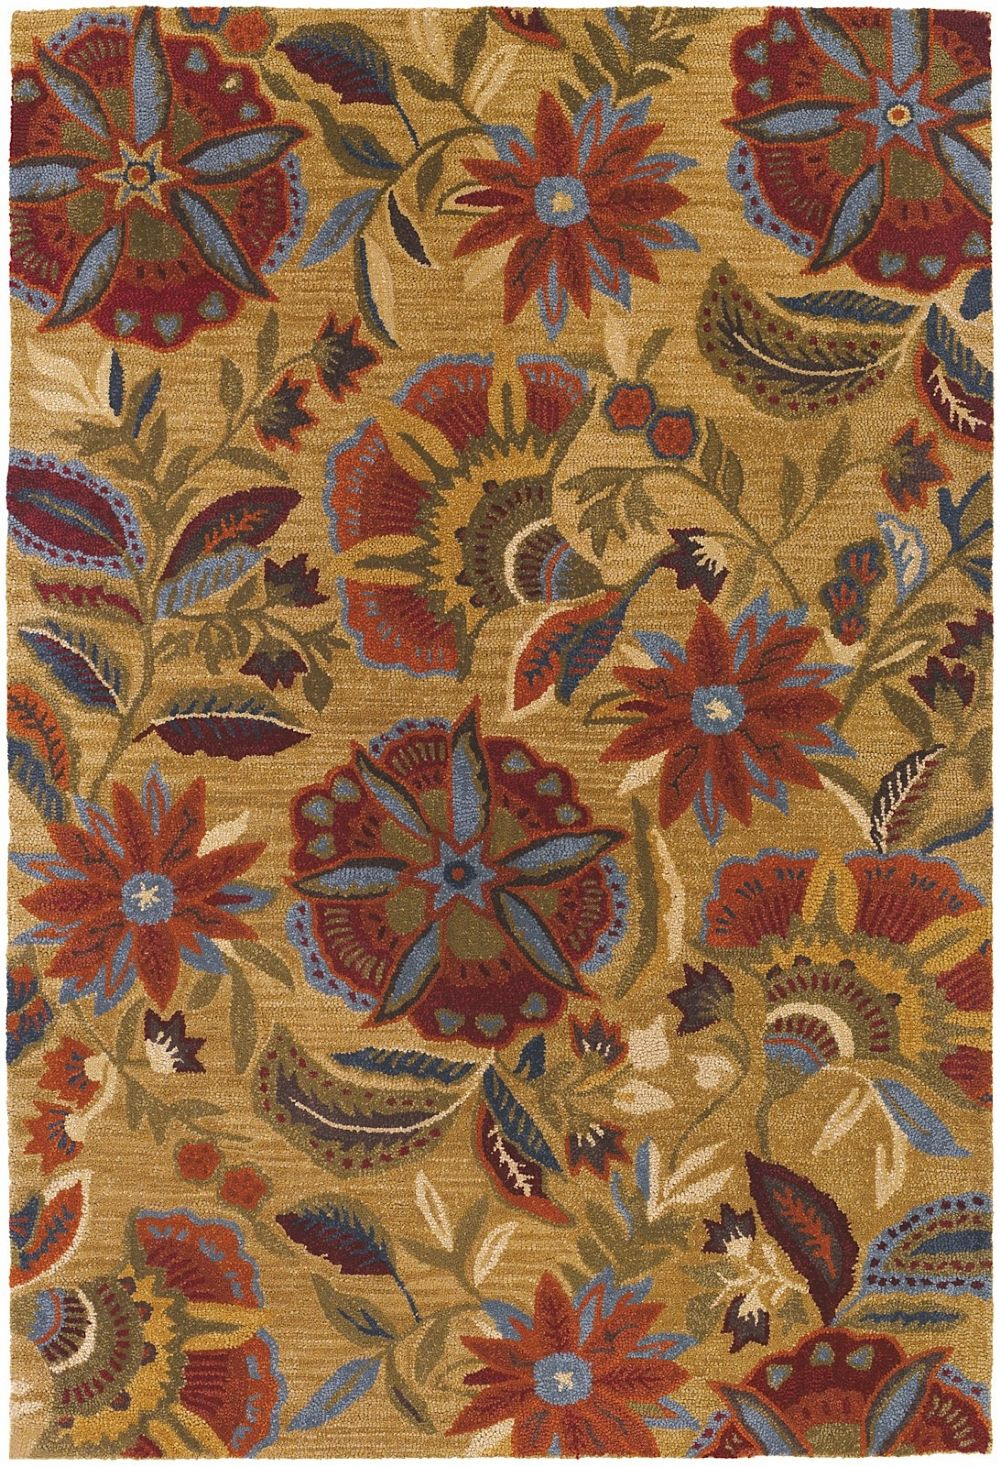 couristan botanique country & floral area rug collection